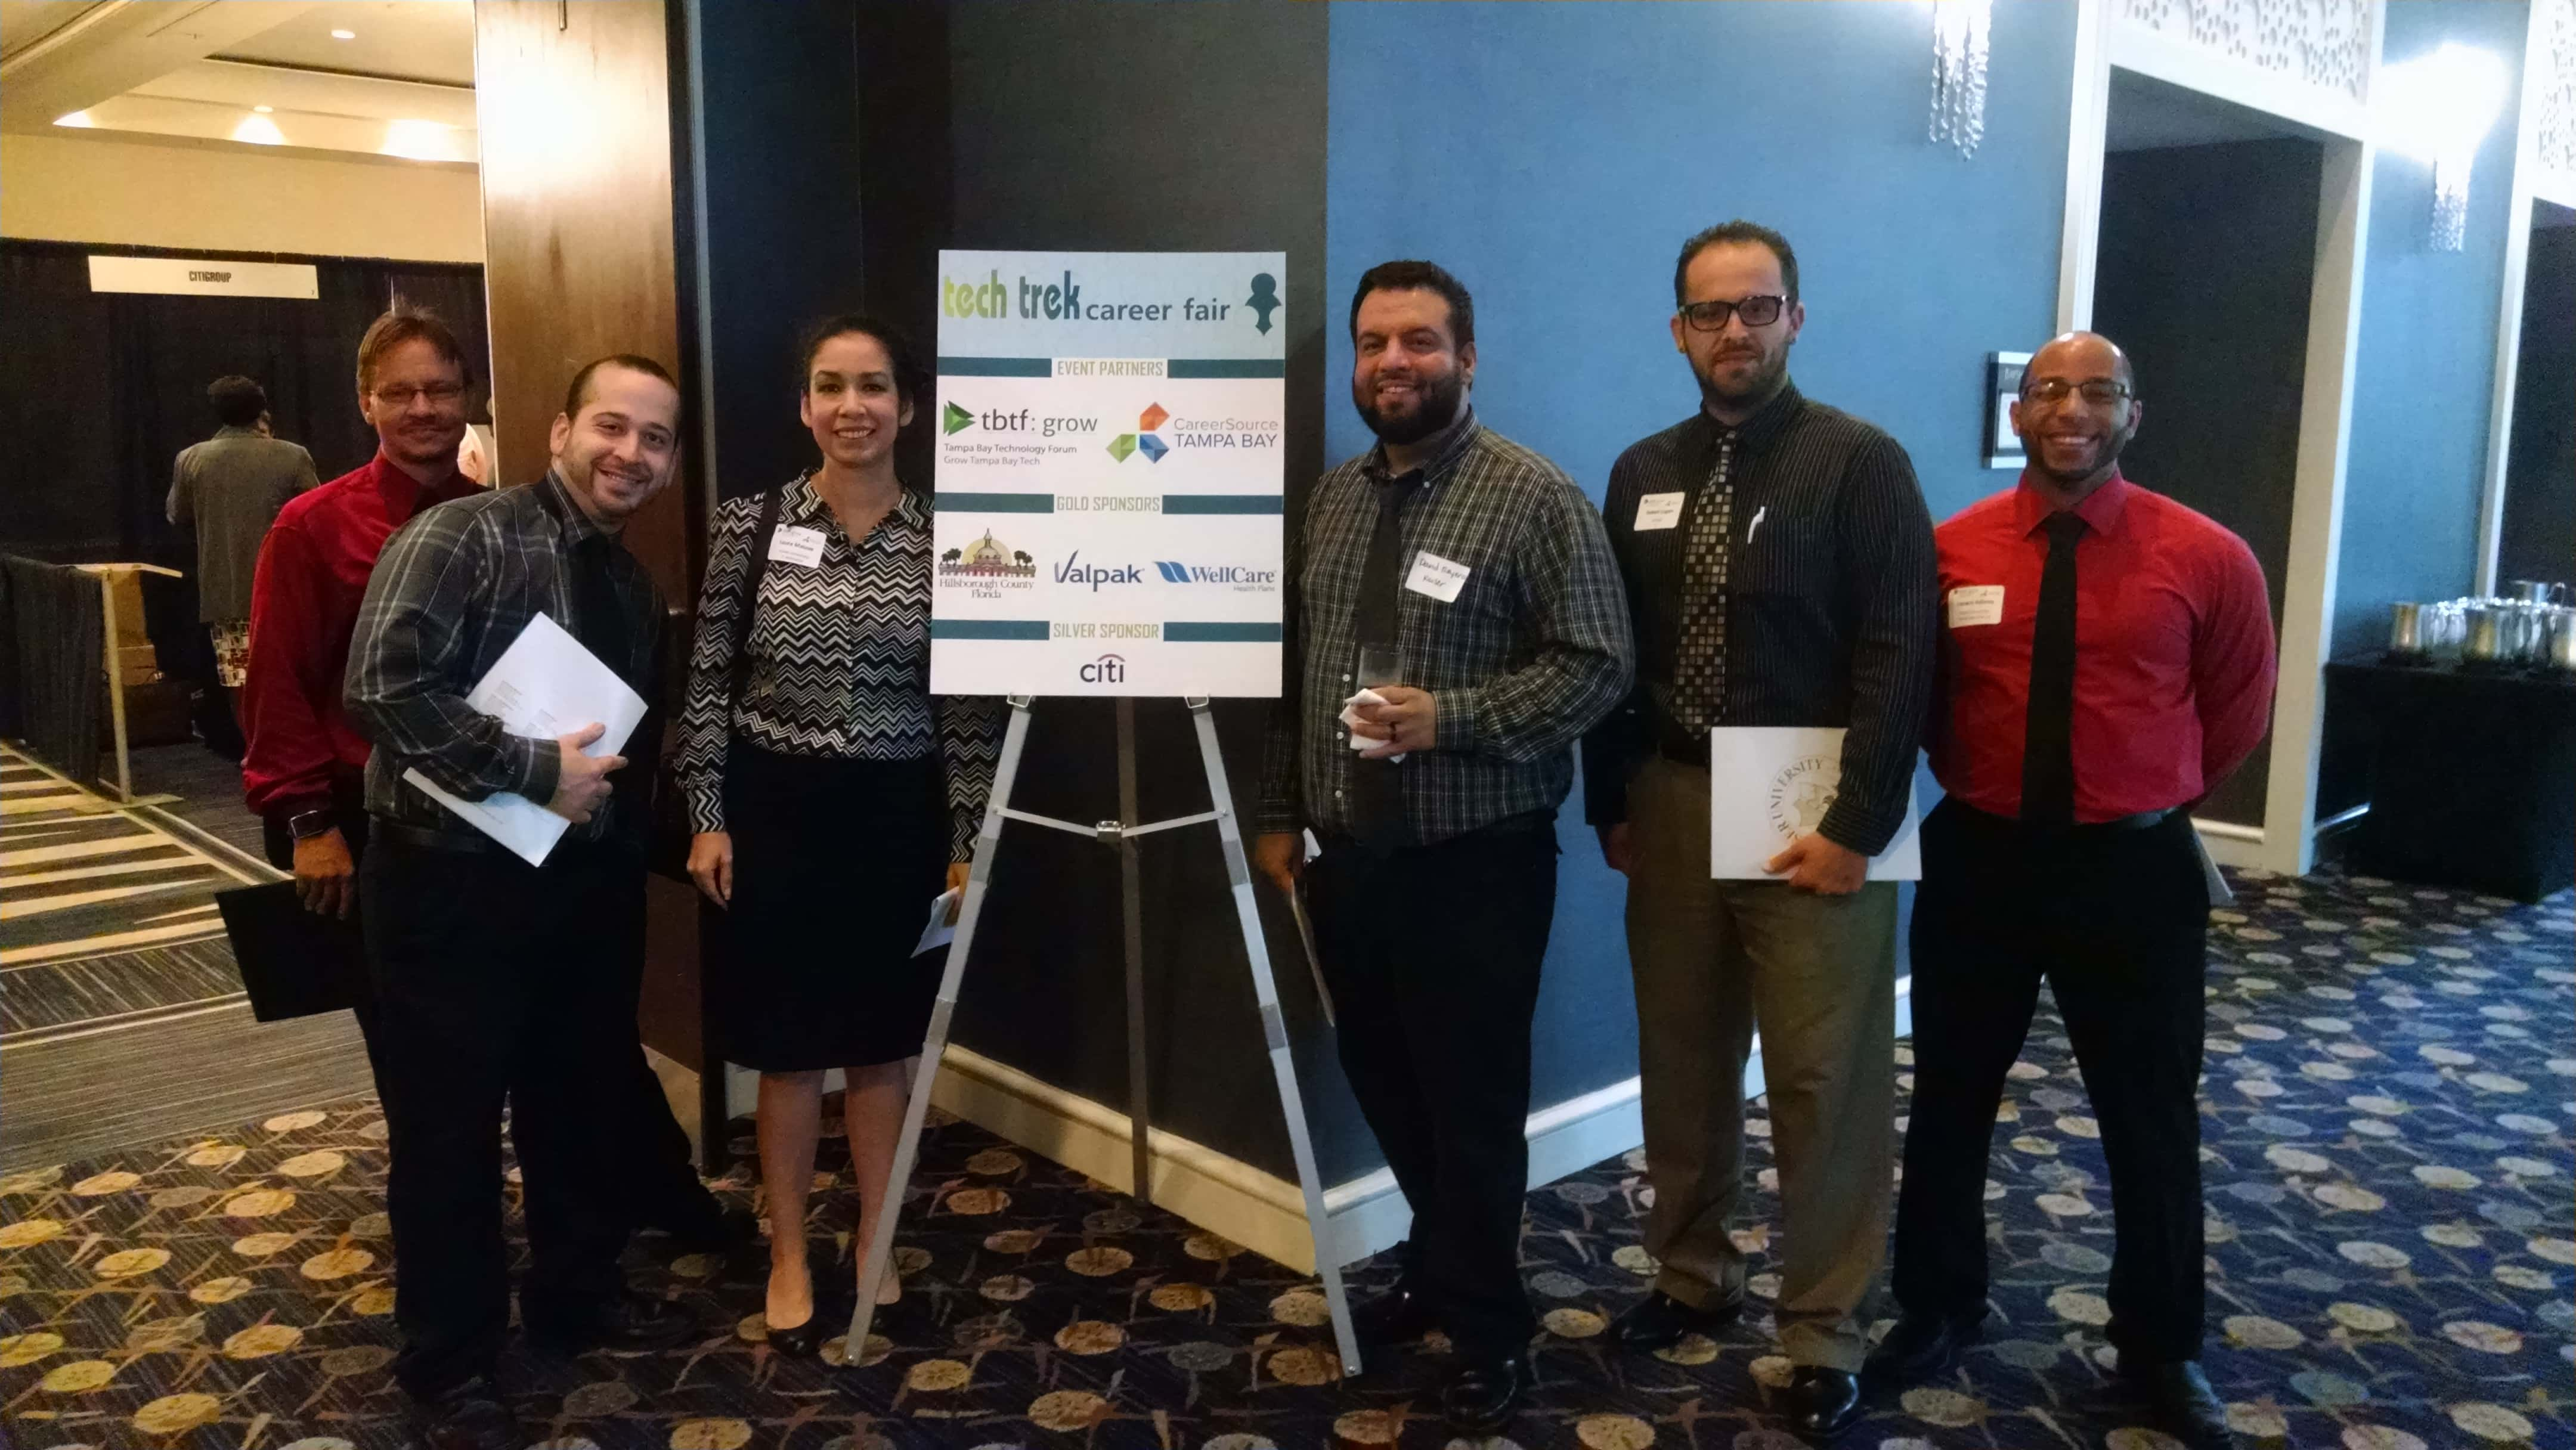 Tampa IT Students Attend Tech Trek Career Fair